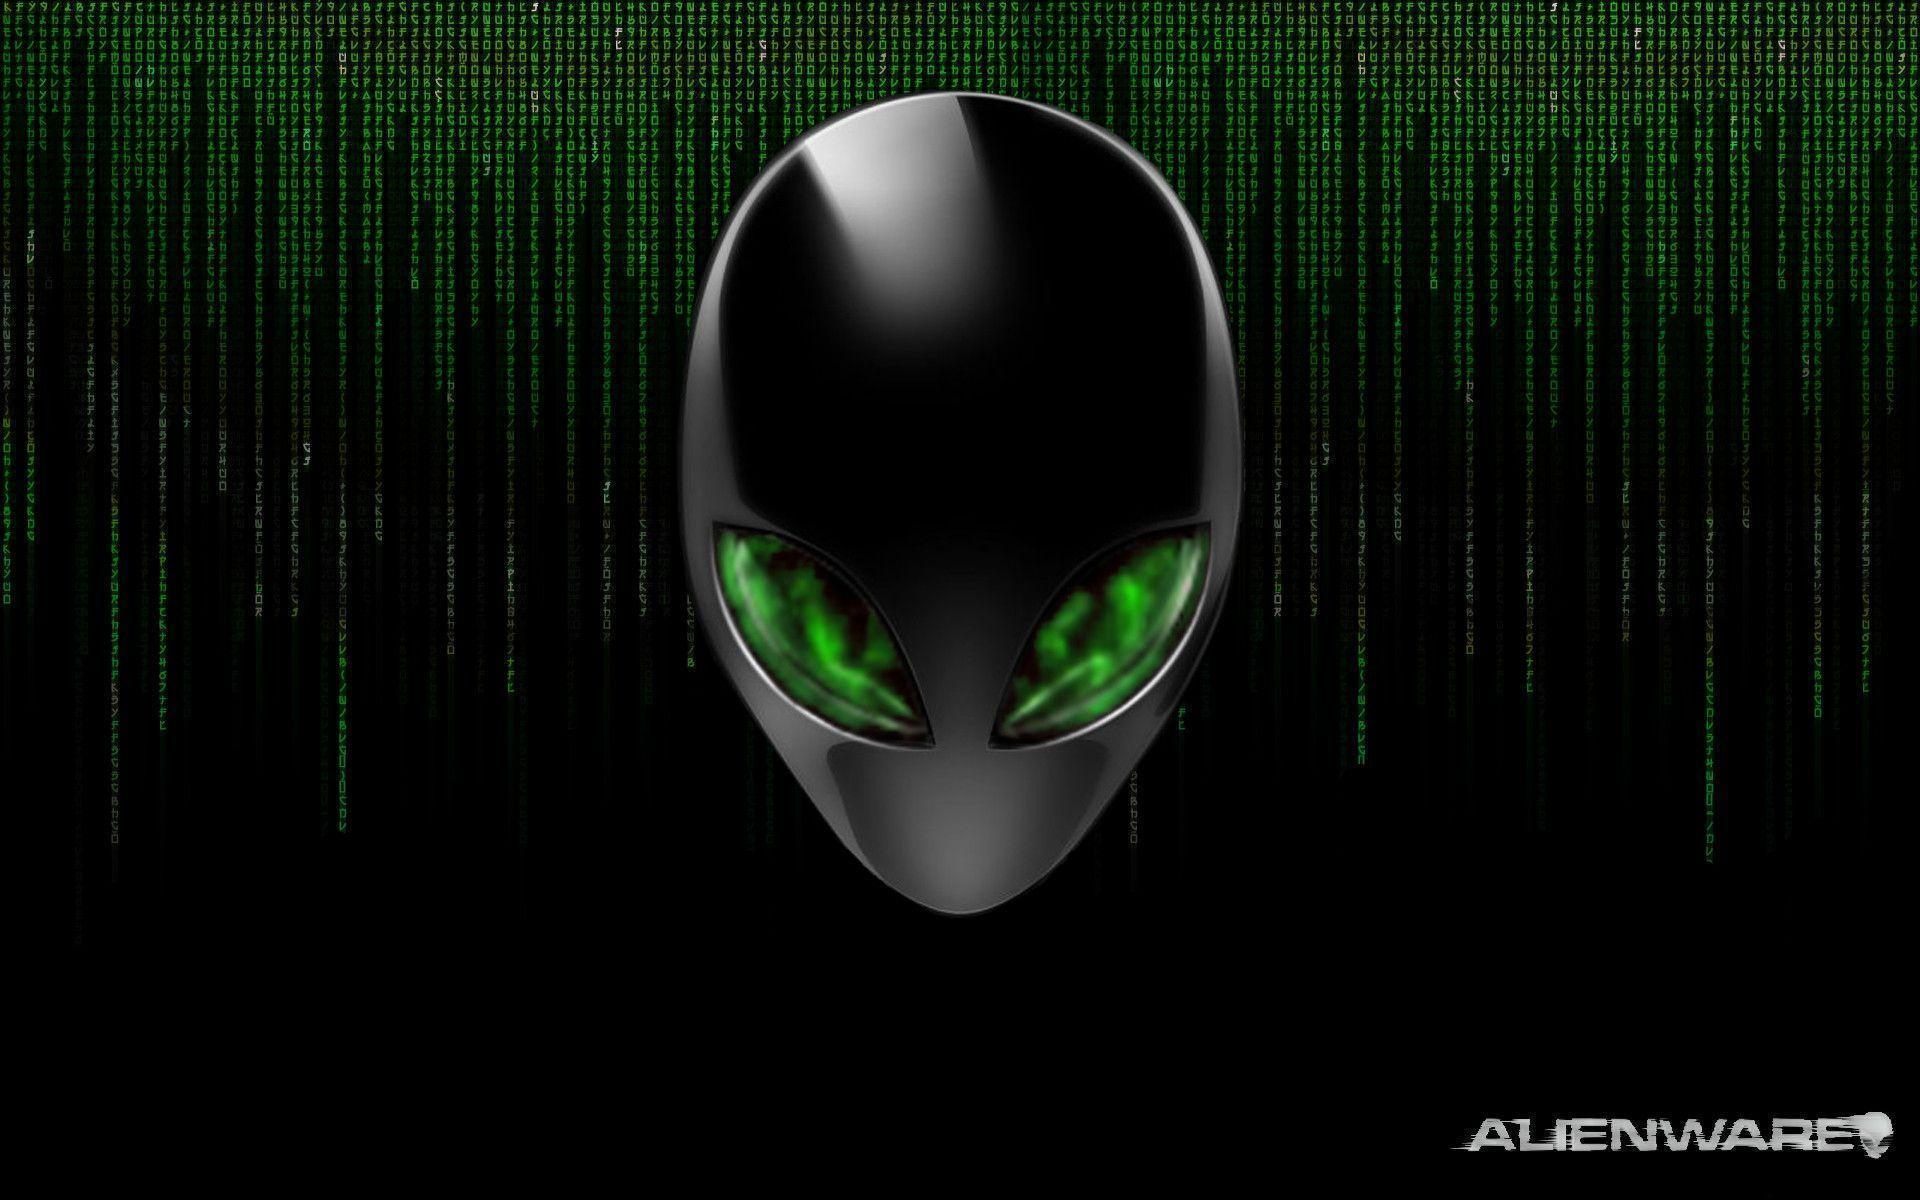 HD Alienware Wallpapers 1920x1200